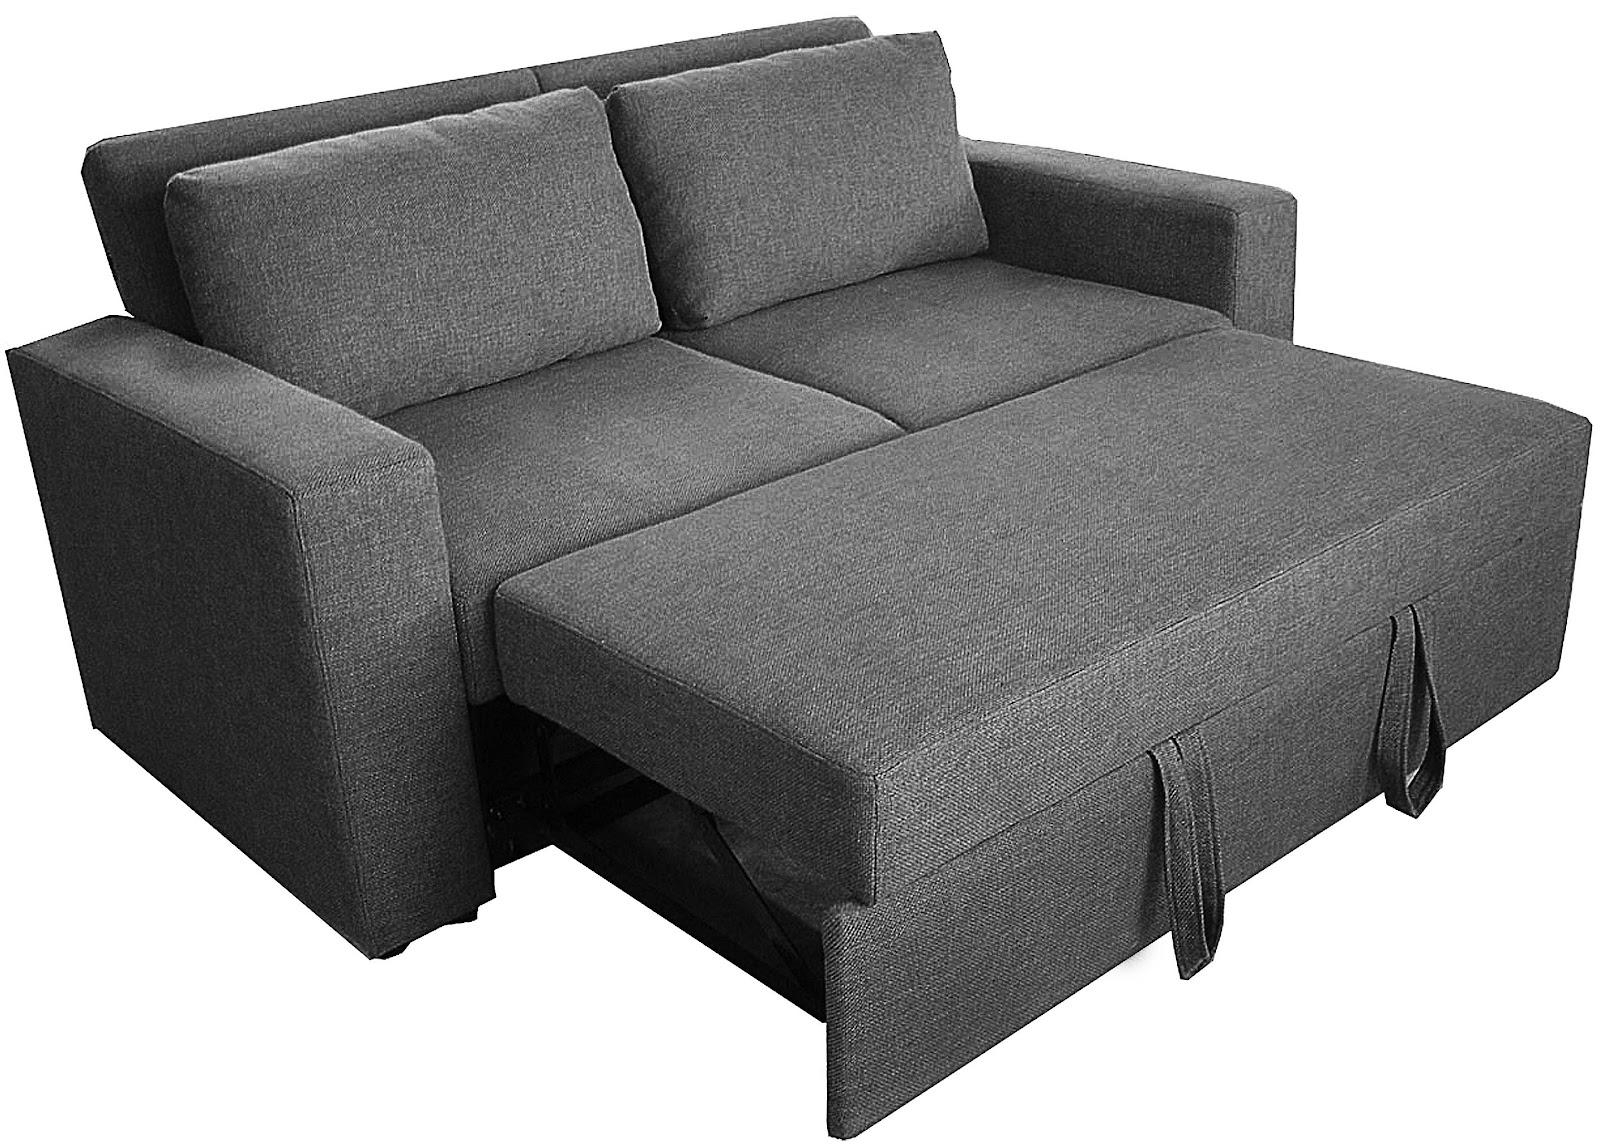 Sofas: Comfortable Simmons Sleeper Sofa For Cozy Sofas Design Pertaining To Simmons Chaise Sofa (View 20 of 20)